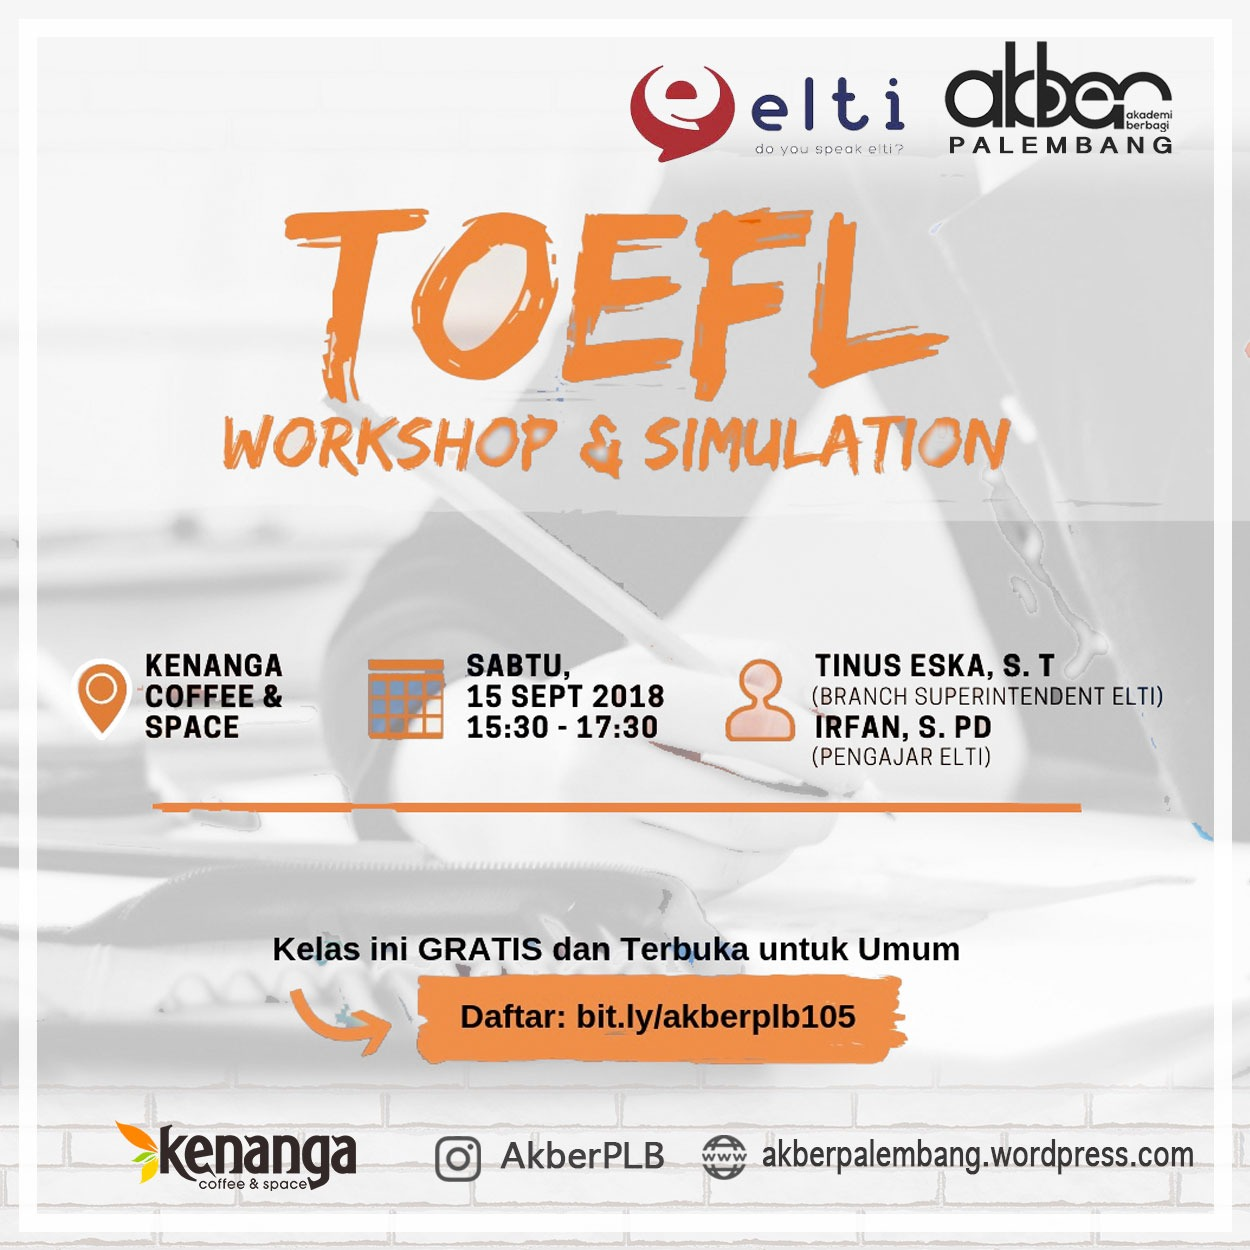 Palembang: TOEFL Workshop & Simulation